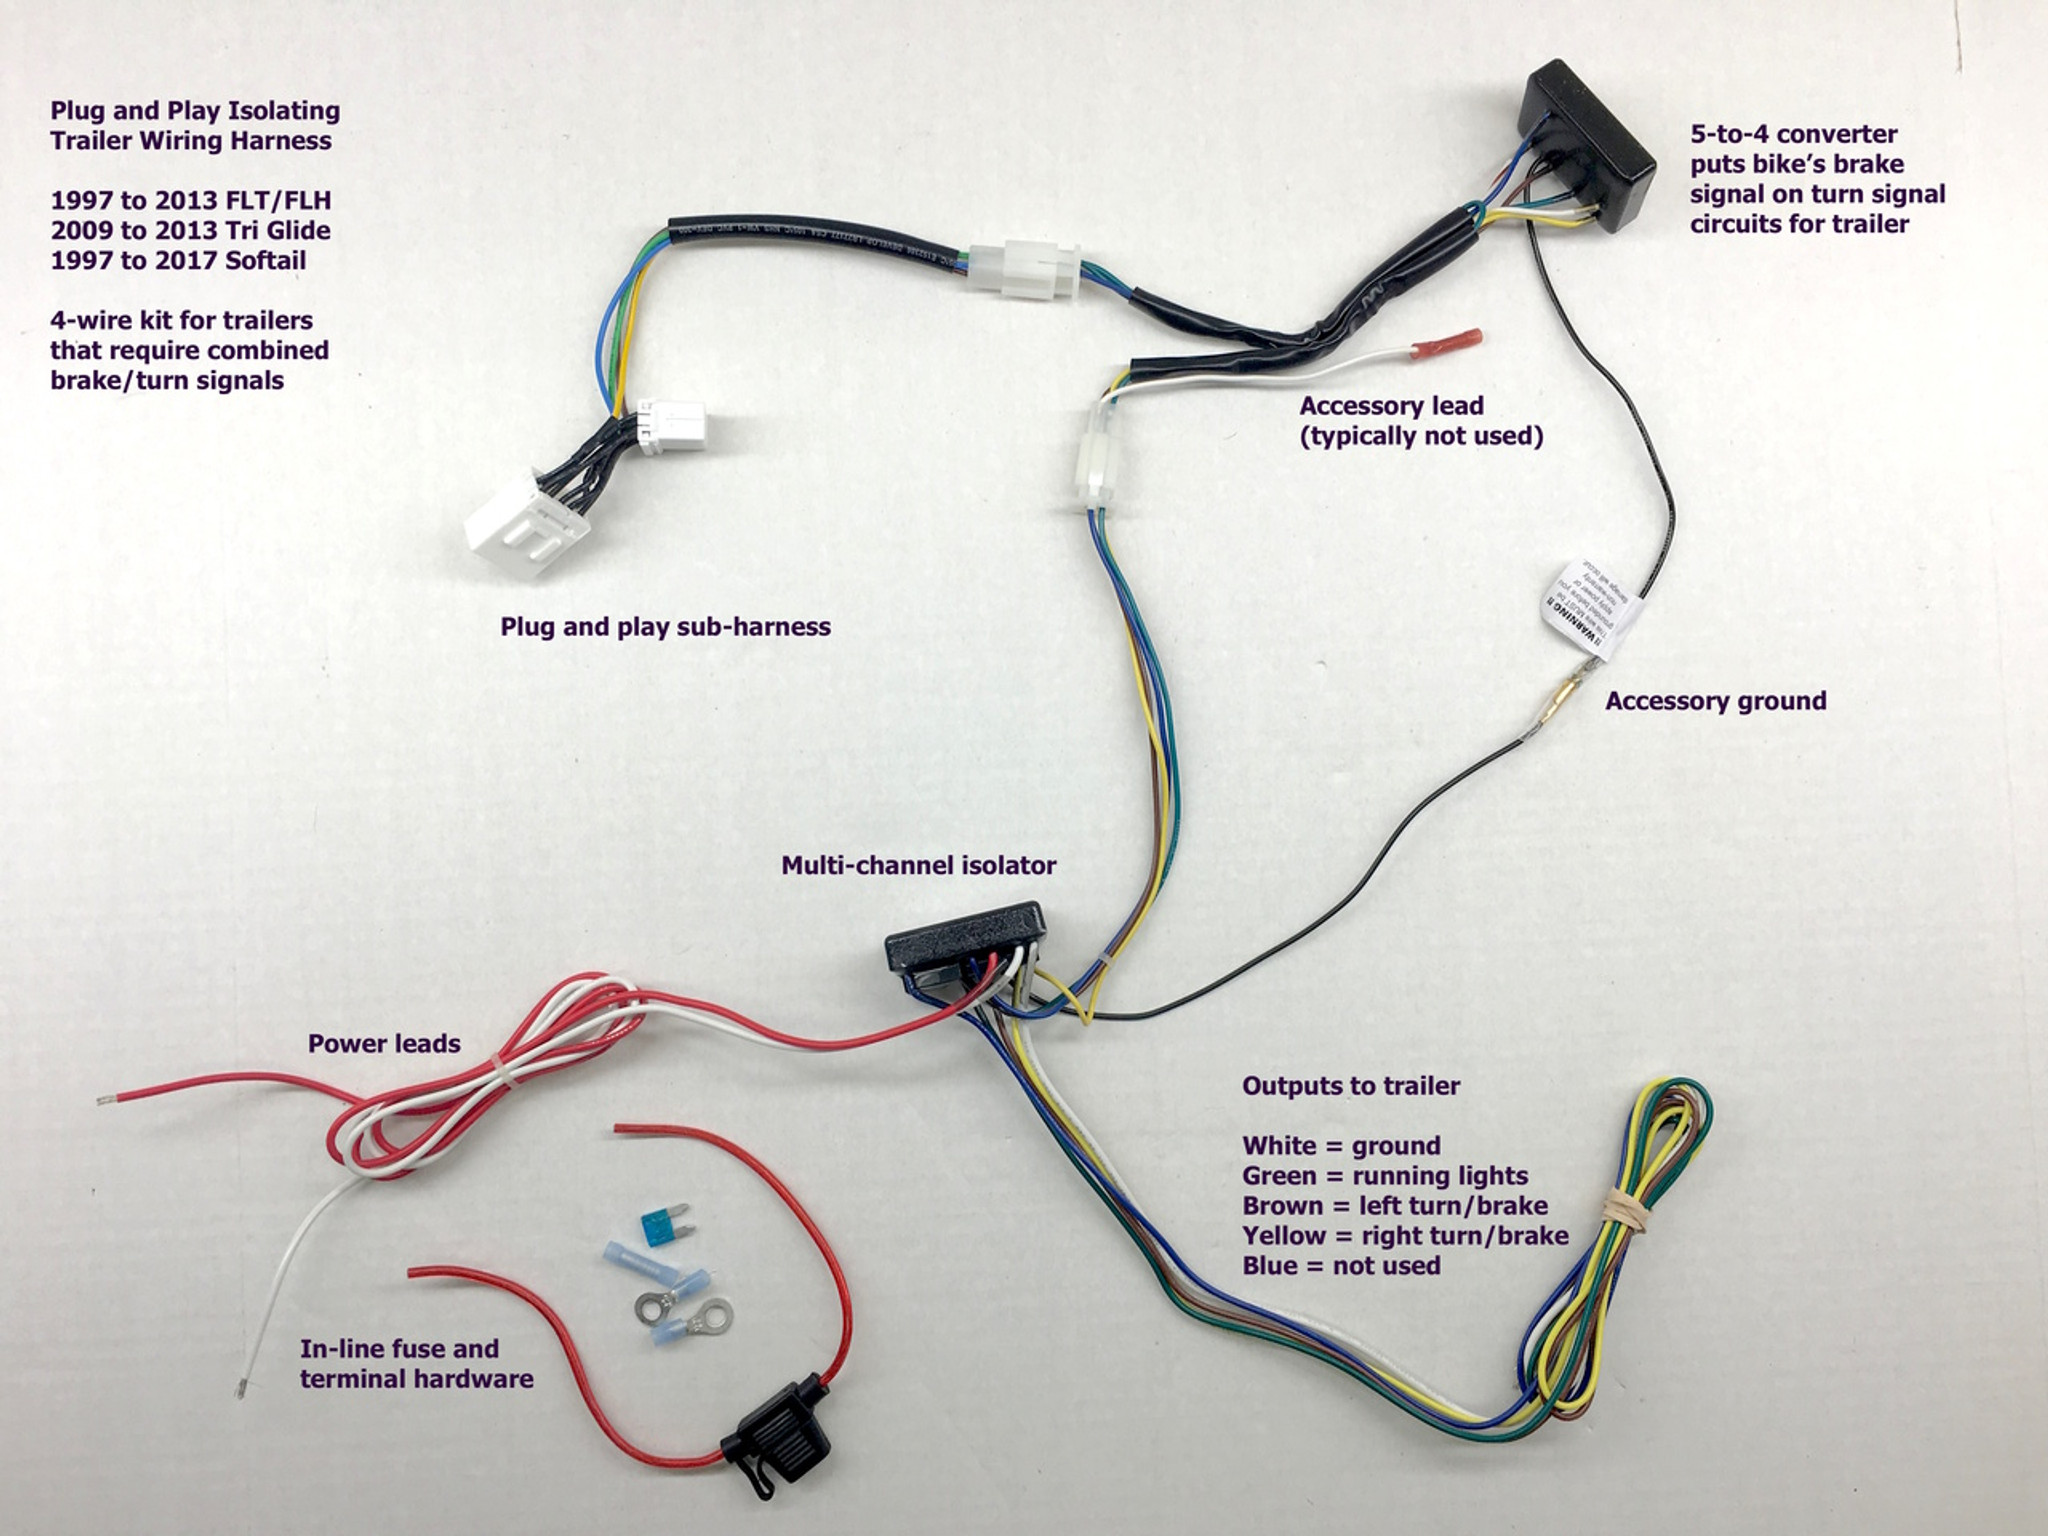 this is the isolating trailer wiring kit for 4 wire trailers combined brake lights [ 1280 x 960 Pixel ]